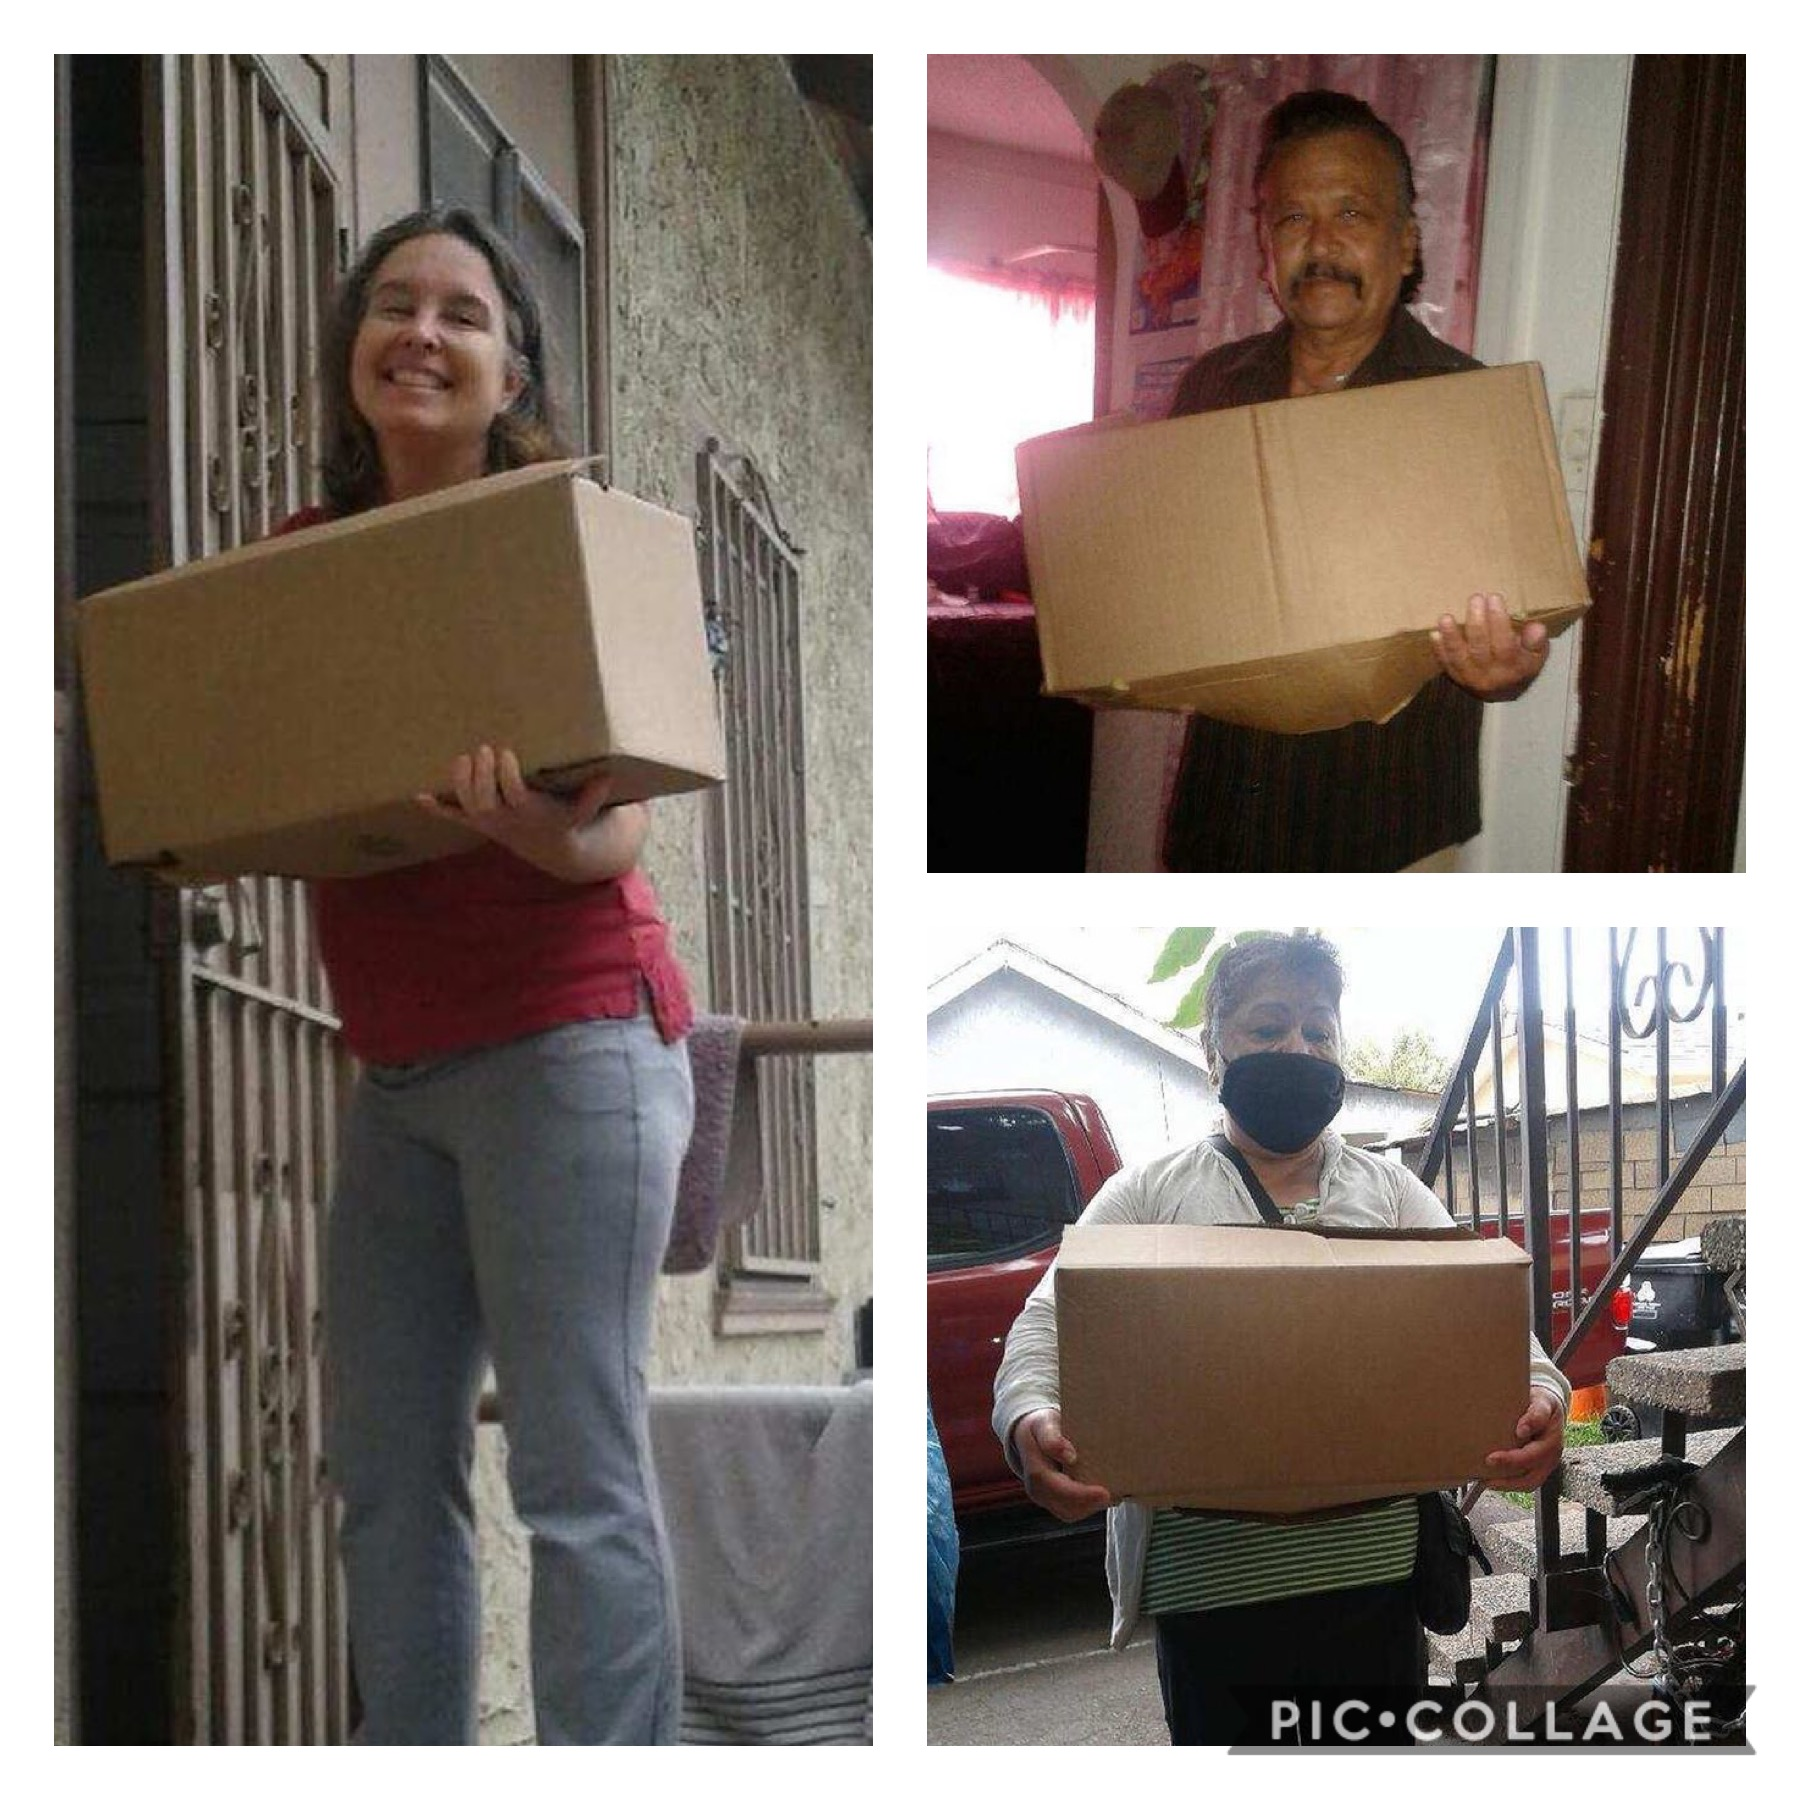 Albany Street neighbors receive boxes of groceries in Pico Union 5-29-2020 COLLAGE